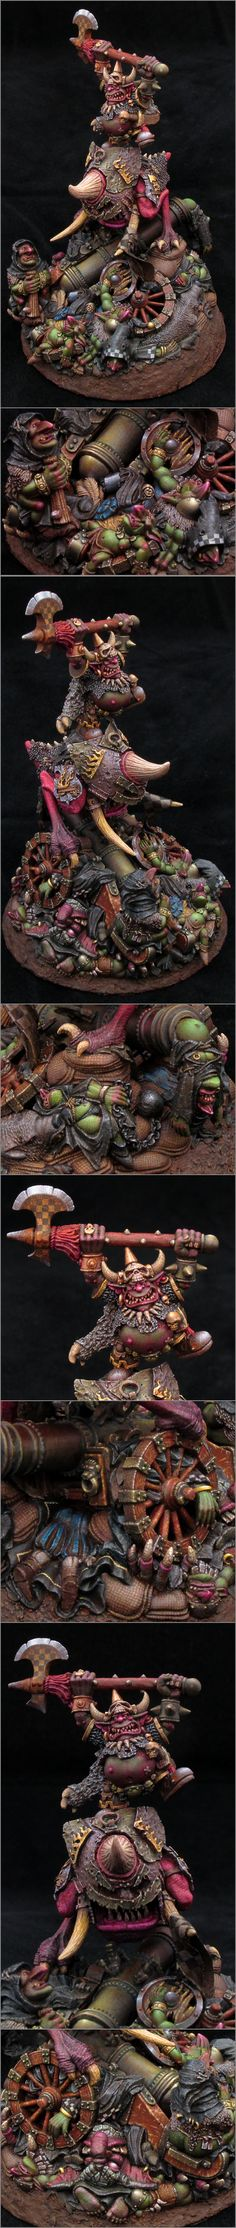 The Internet's largest gallery of painted miniatures, with a large repository of how-to articles on miniature painting Fantasy Battle, Fantasy Races, Warhammer Models, Warhammer Fantasy, Fantasy Model, Fantasy Art, Orks 40k, Warhammer 40k Miniatures, Fantasy Miniatures